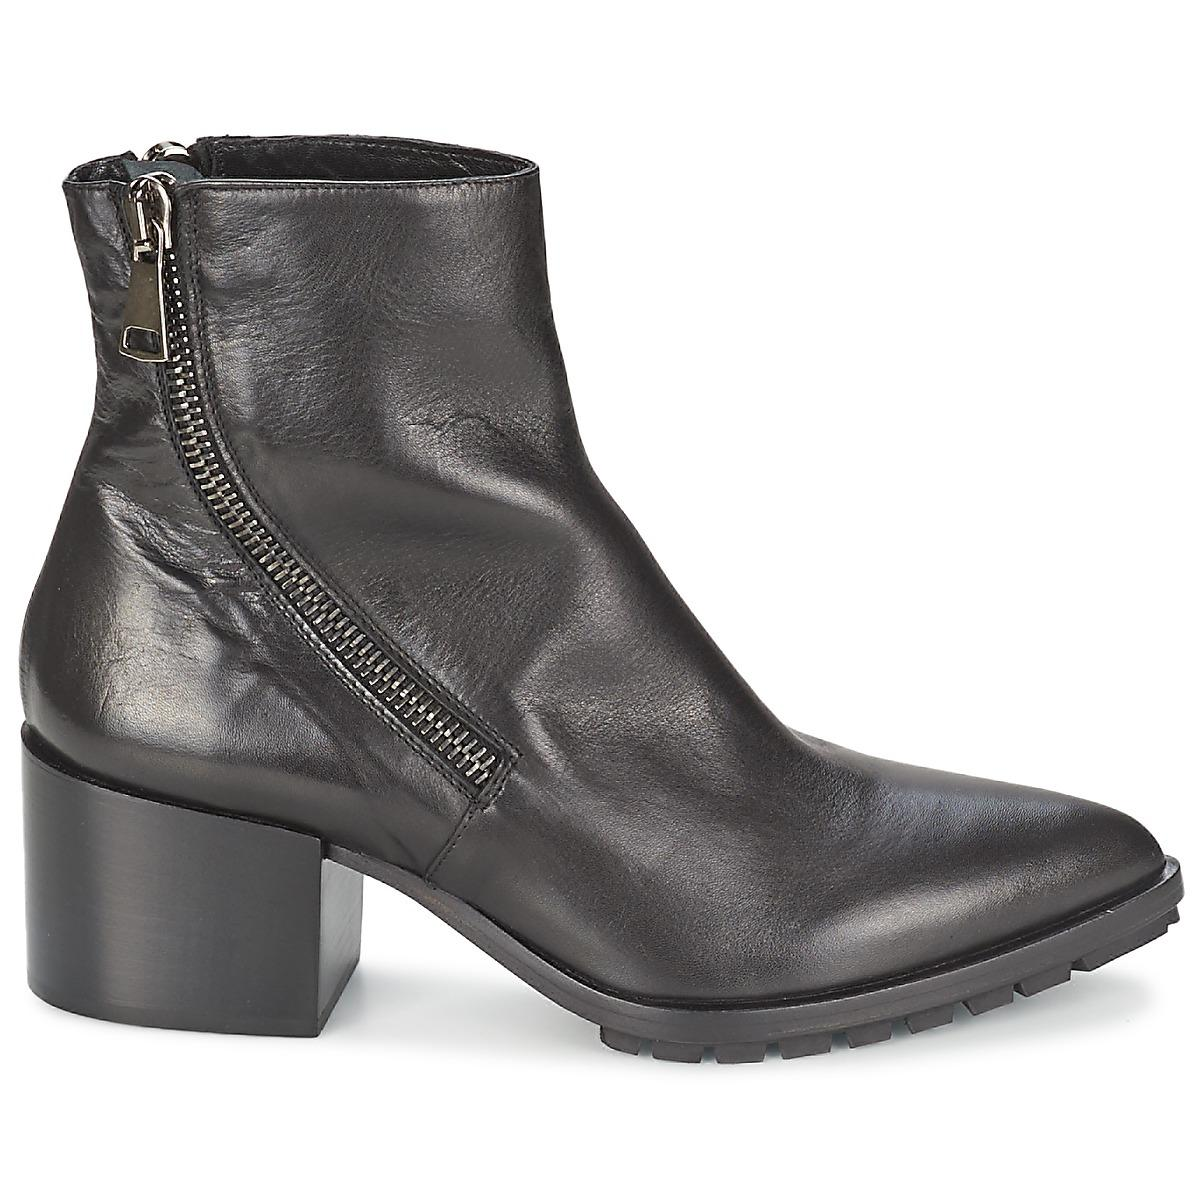 Strategia Leather Lyir Women's Low Ankle Boots In Black - Save 26%